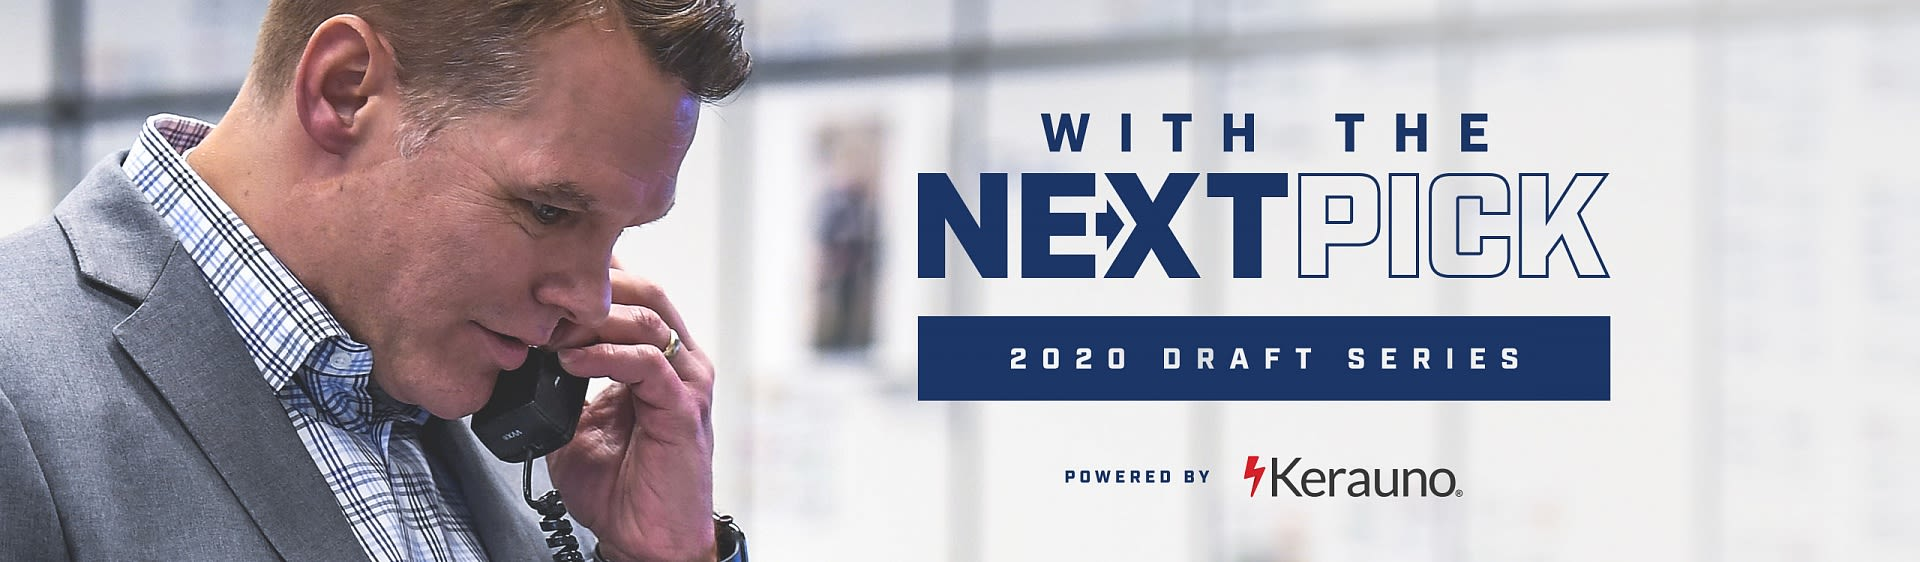 With The Next Pick: 2020 Draft Series, Powered By Kerauno